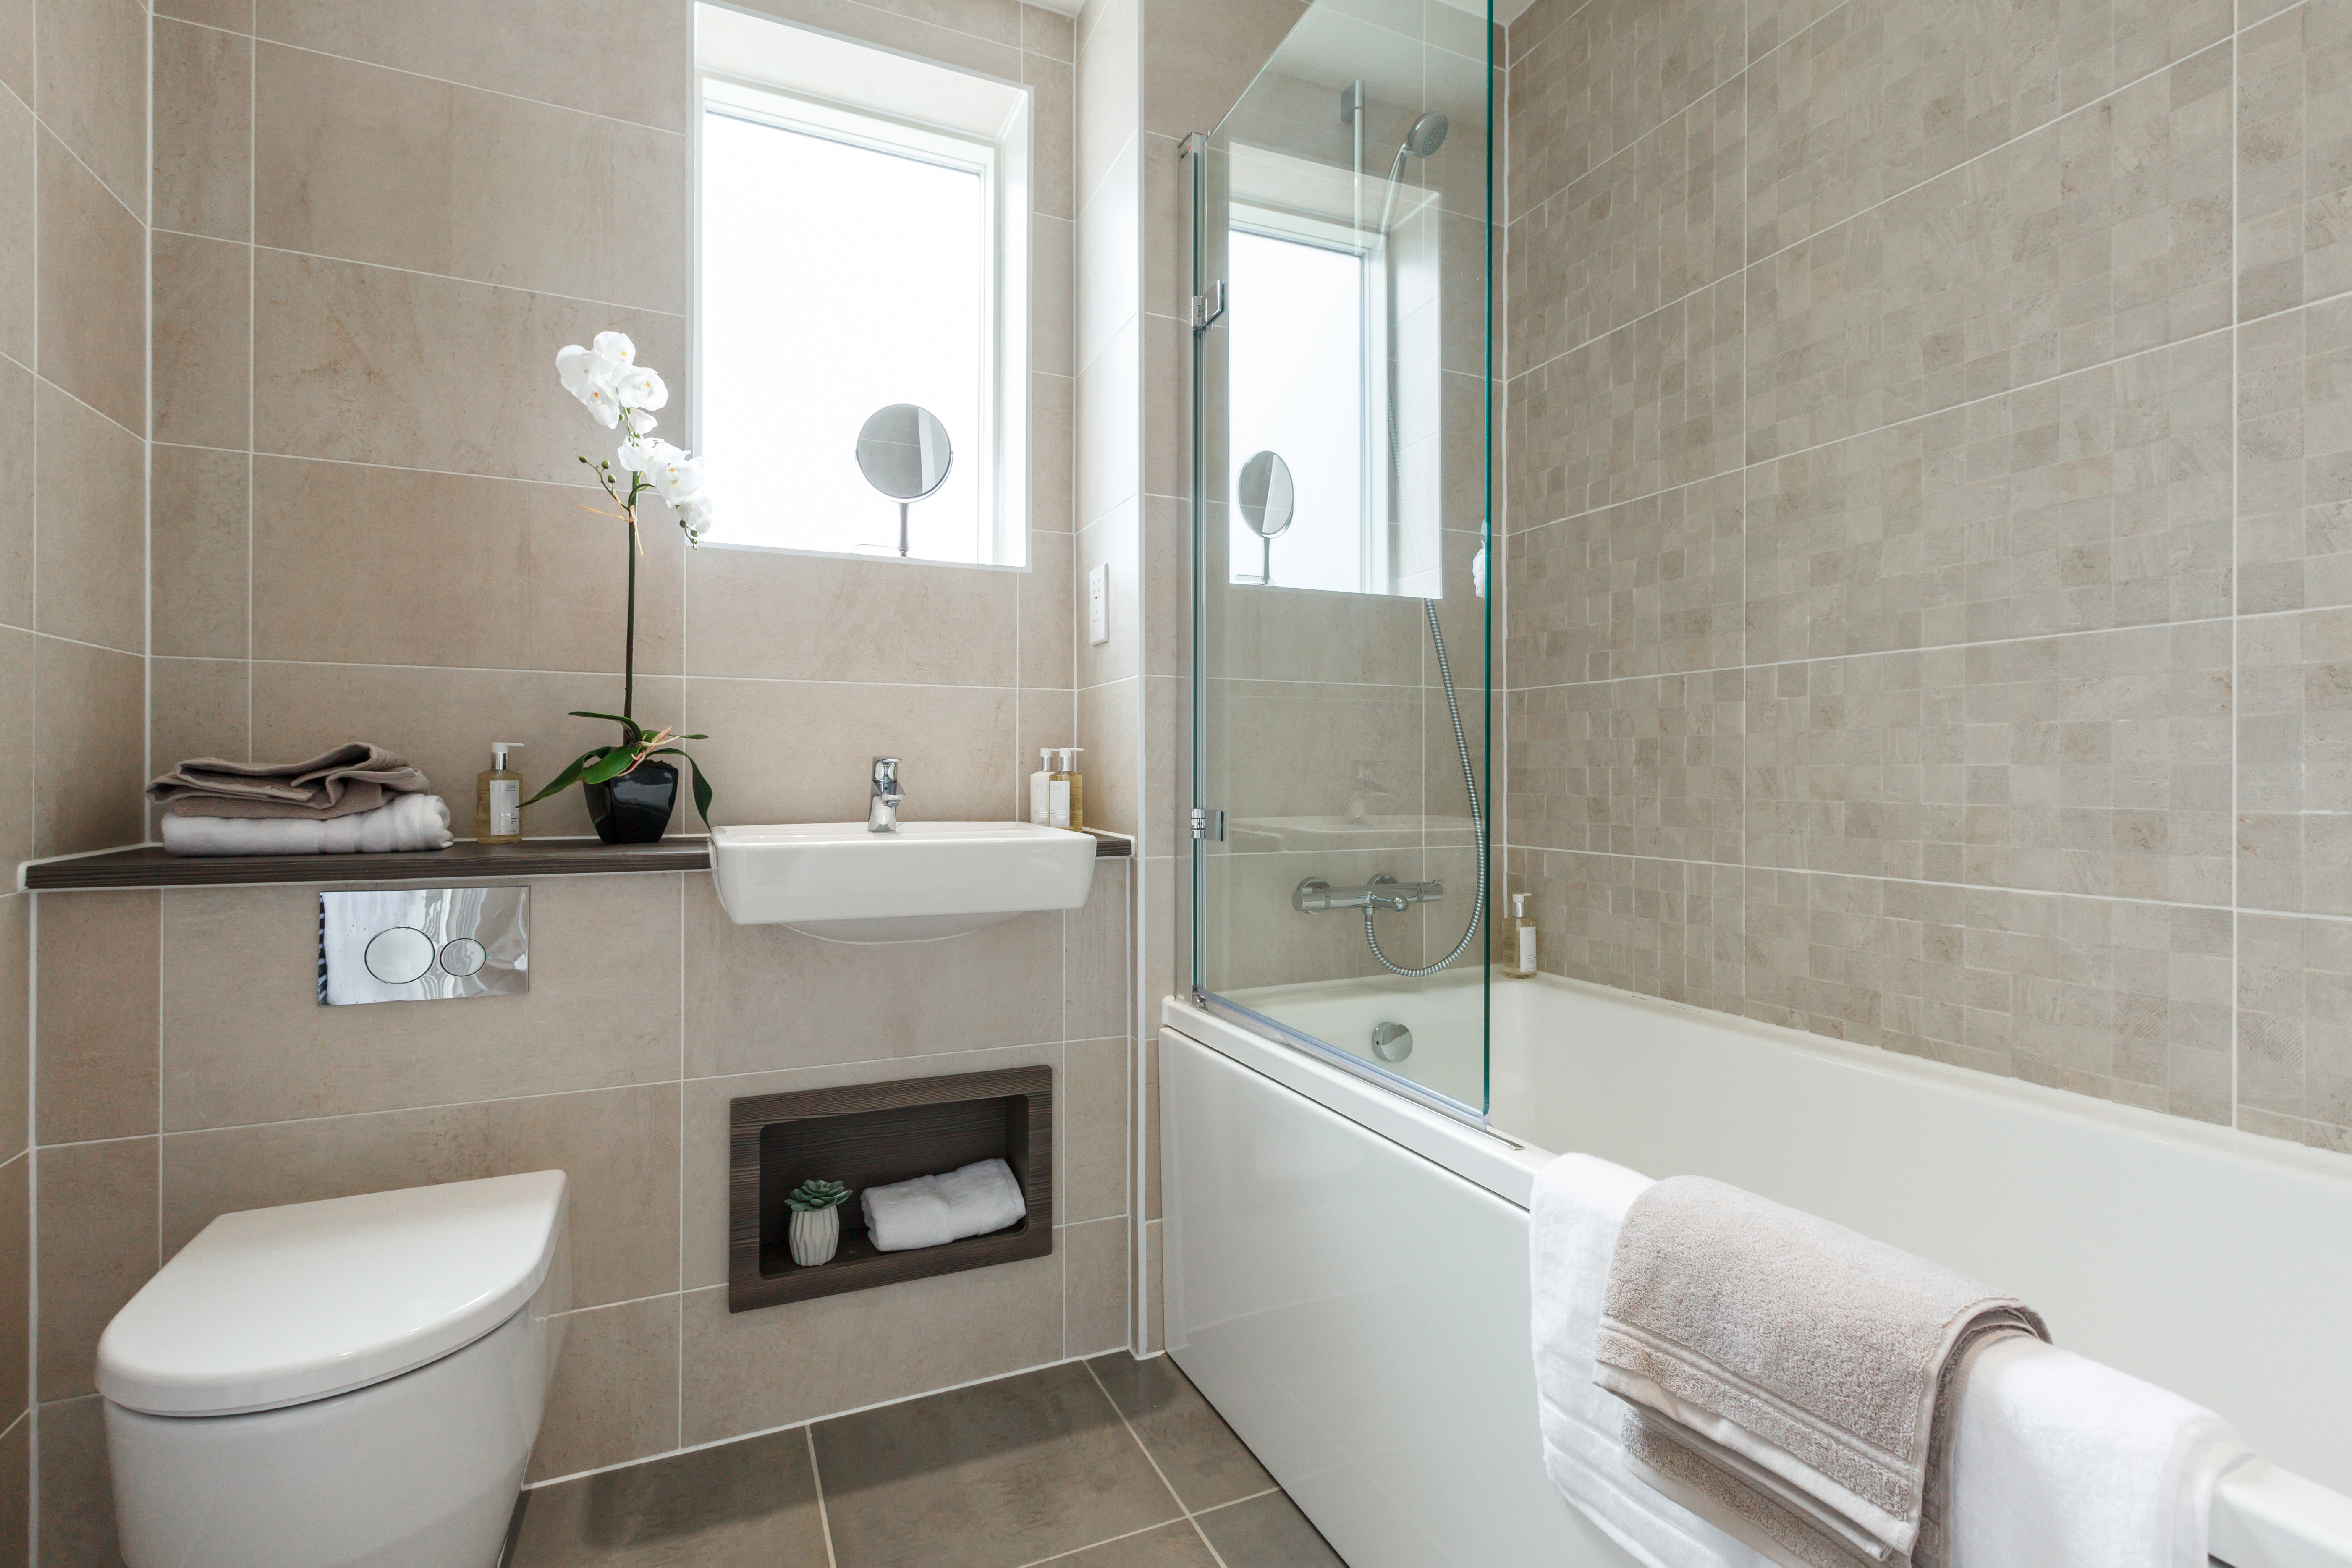 TW NT_Millbrook Park_The Orton_Bathroom 1